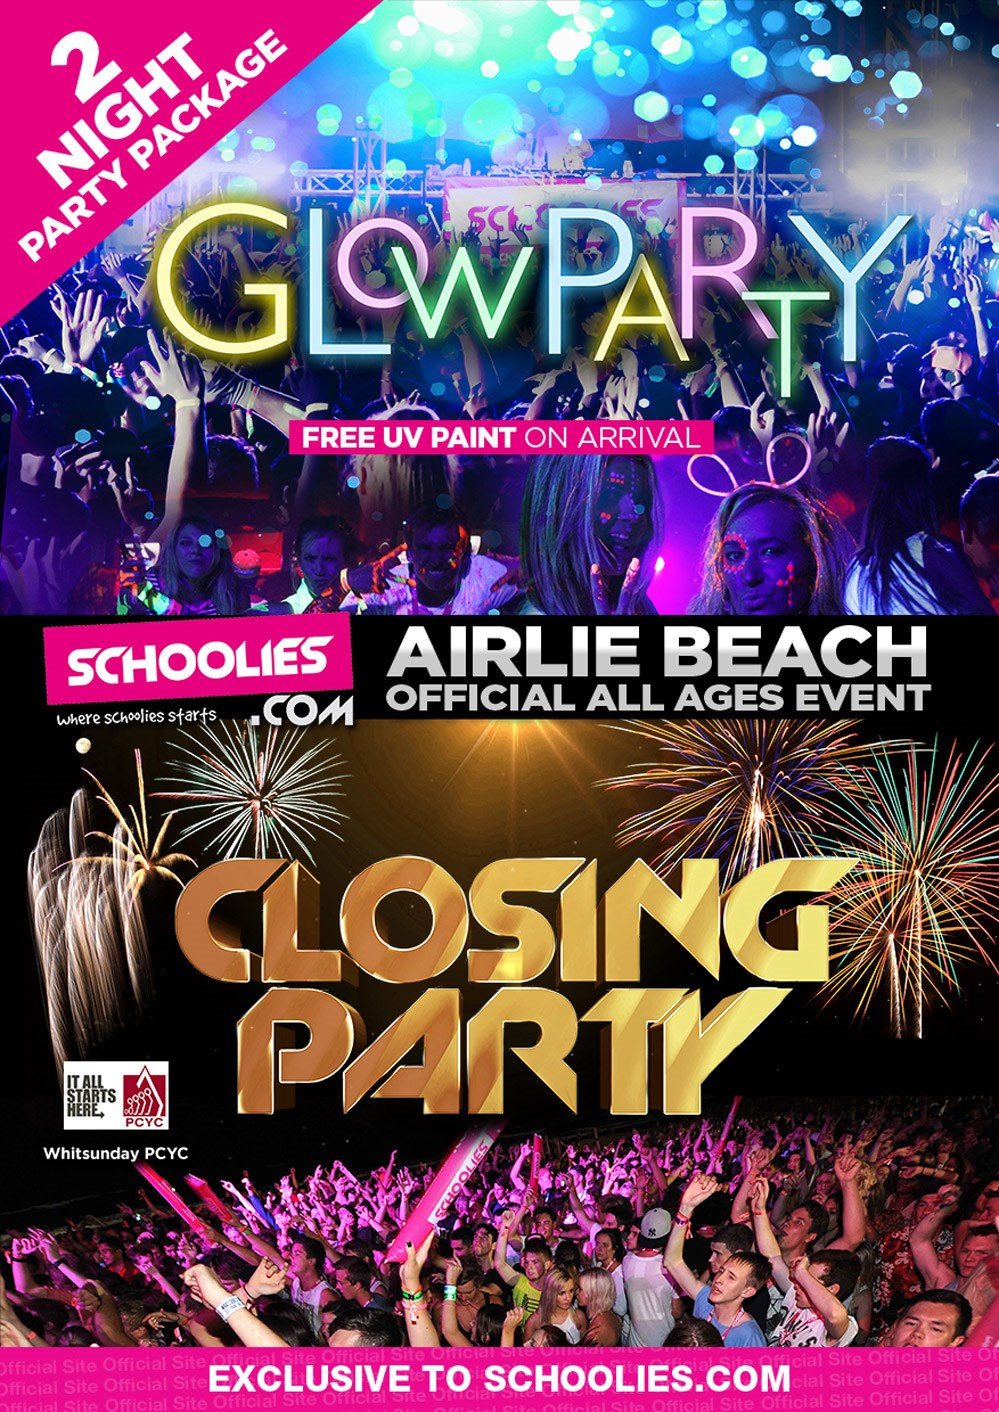 Airlie Beach Schoolies Playground Party